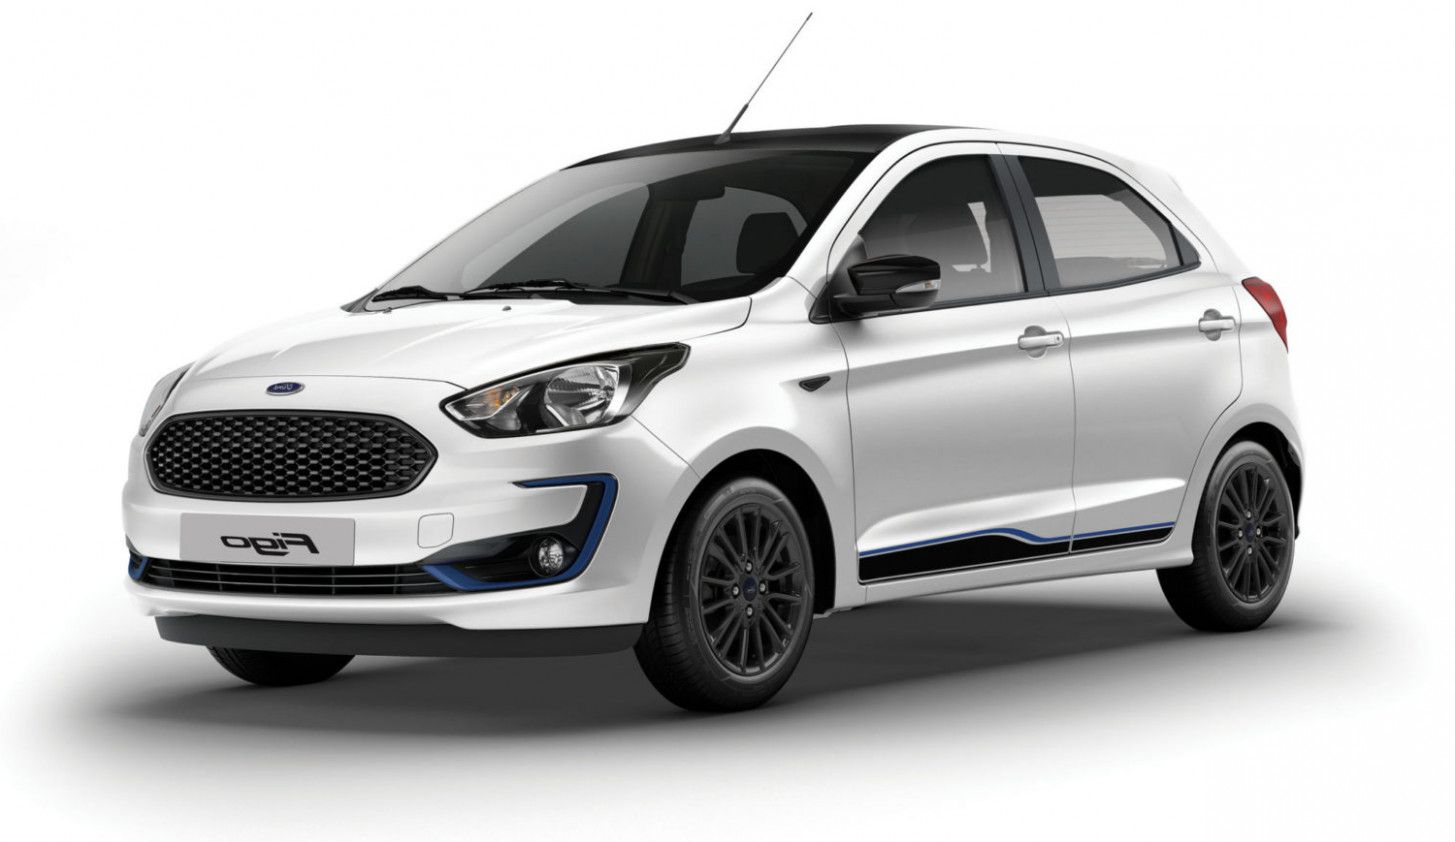 10 Benefits Of Ford Figo At 2020 That May Change Your Ford Ford